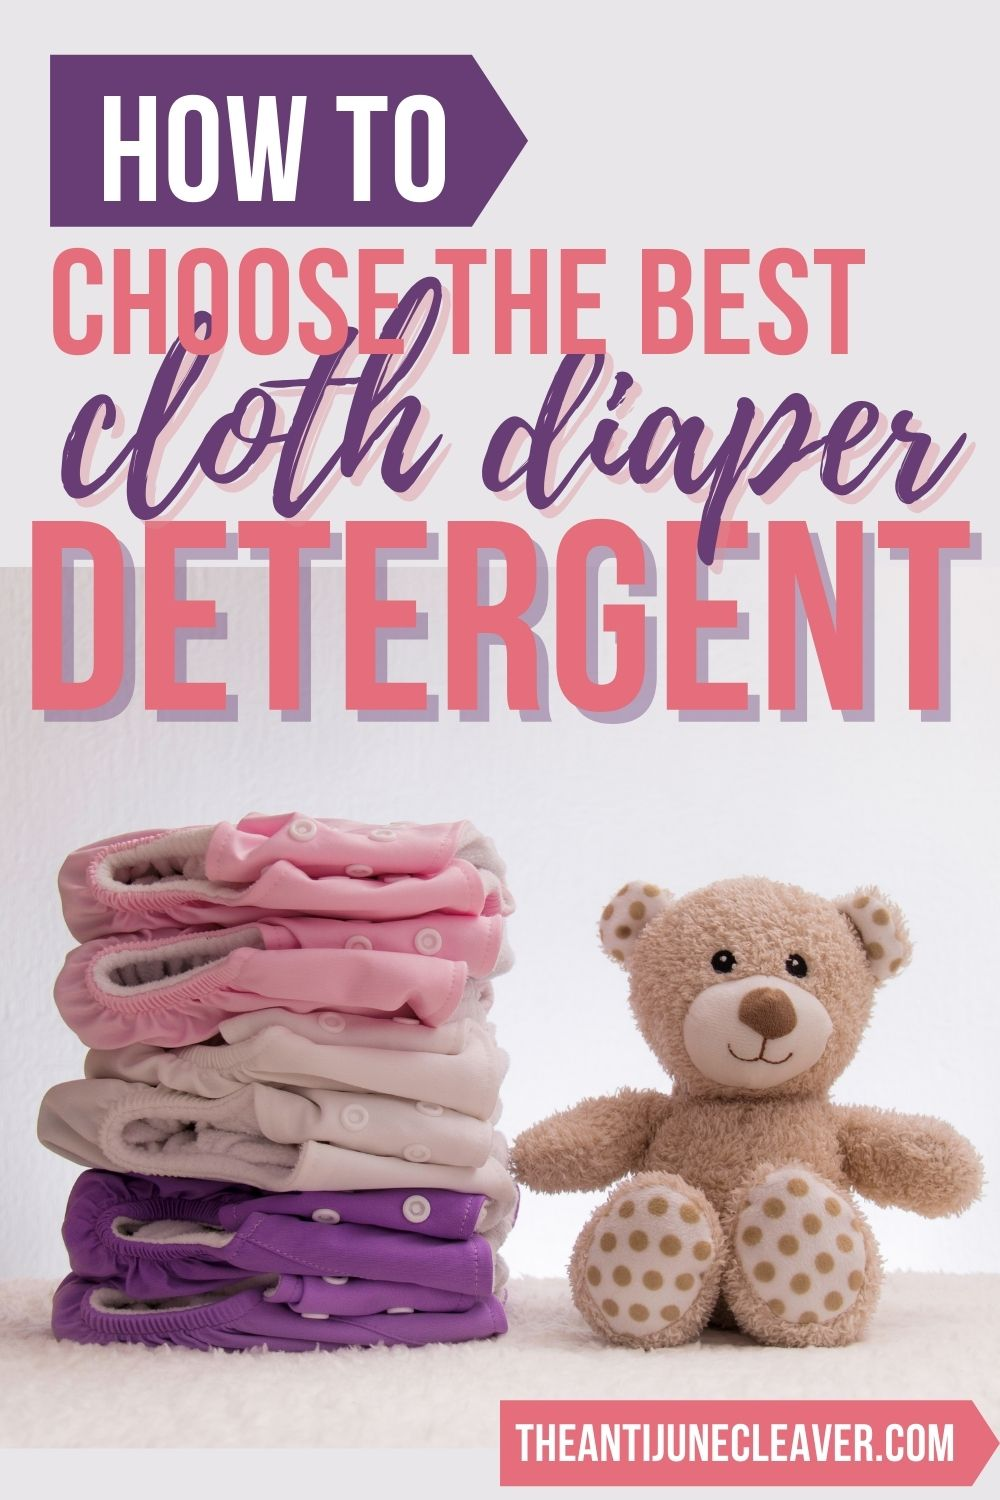 How to choose cloth diaper detergent